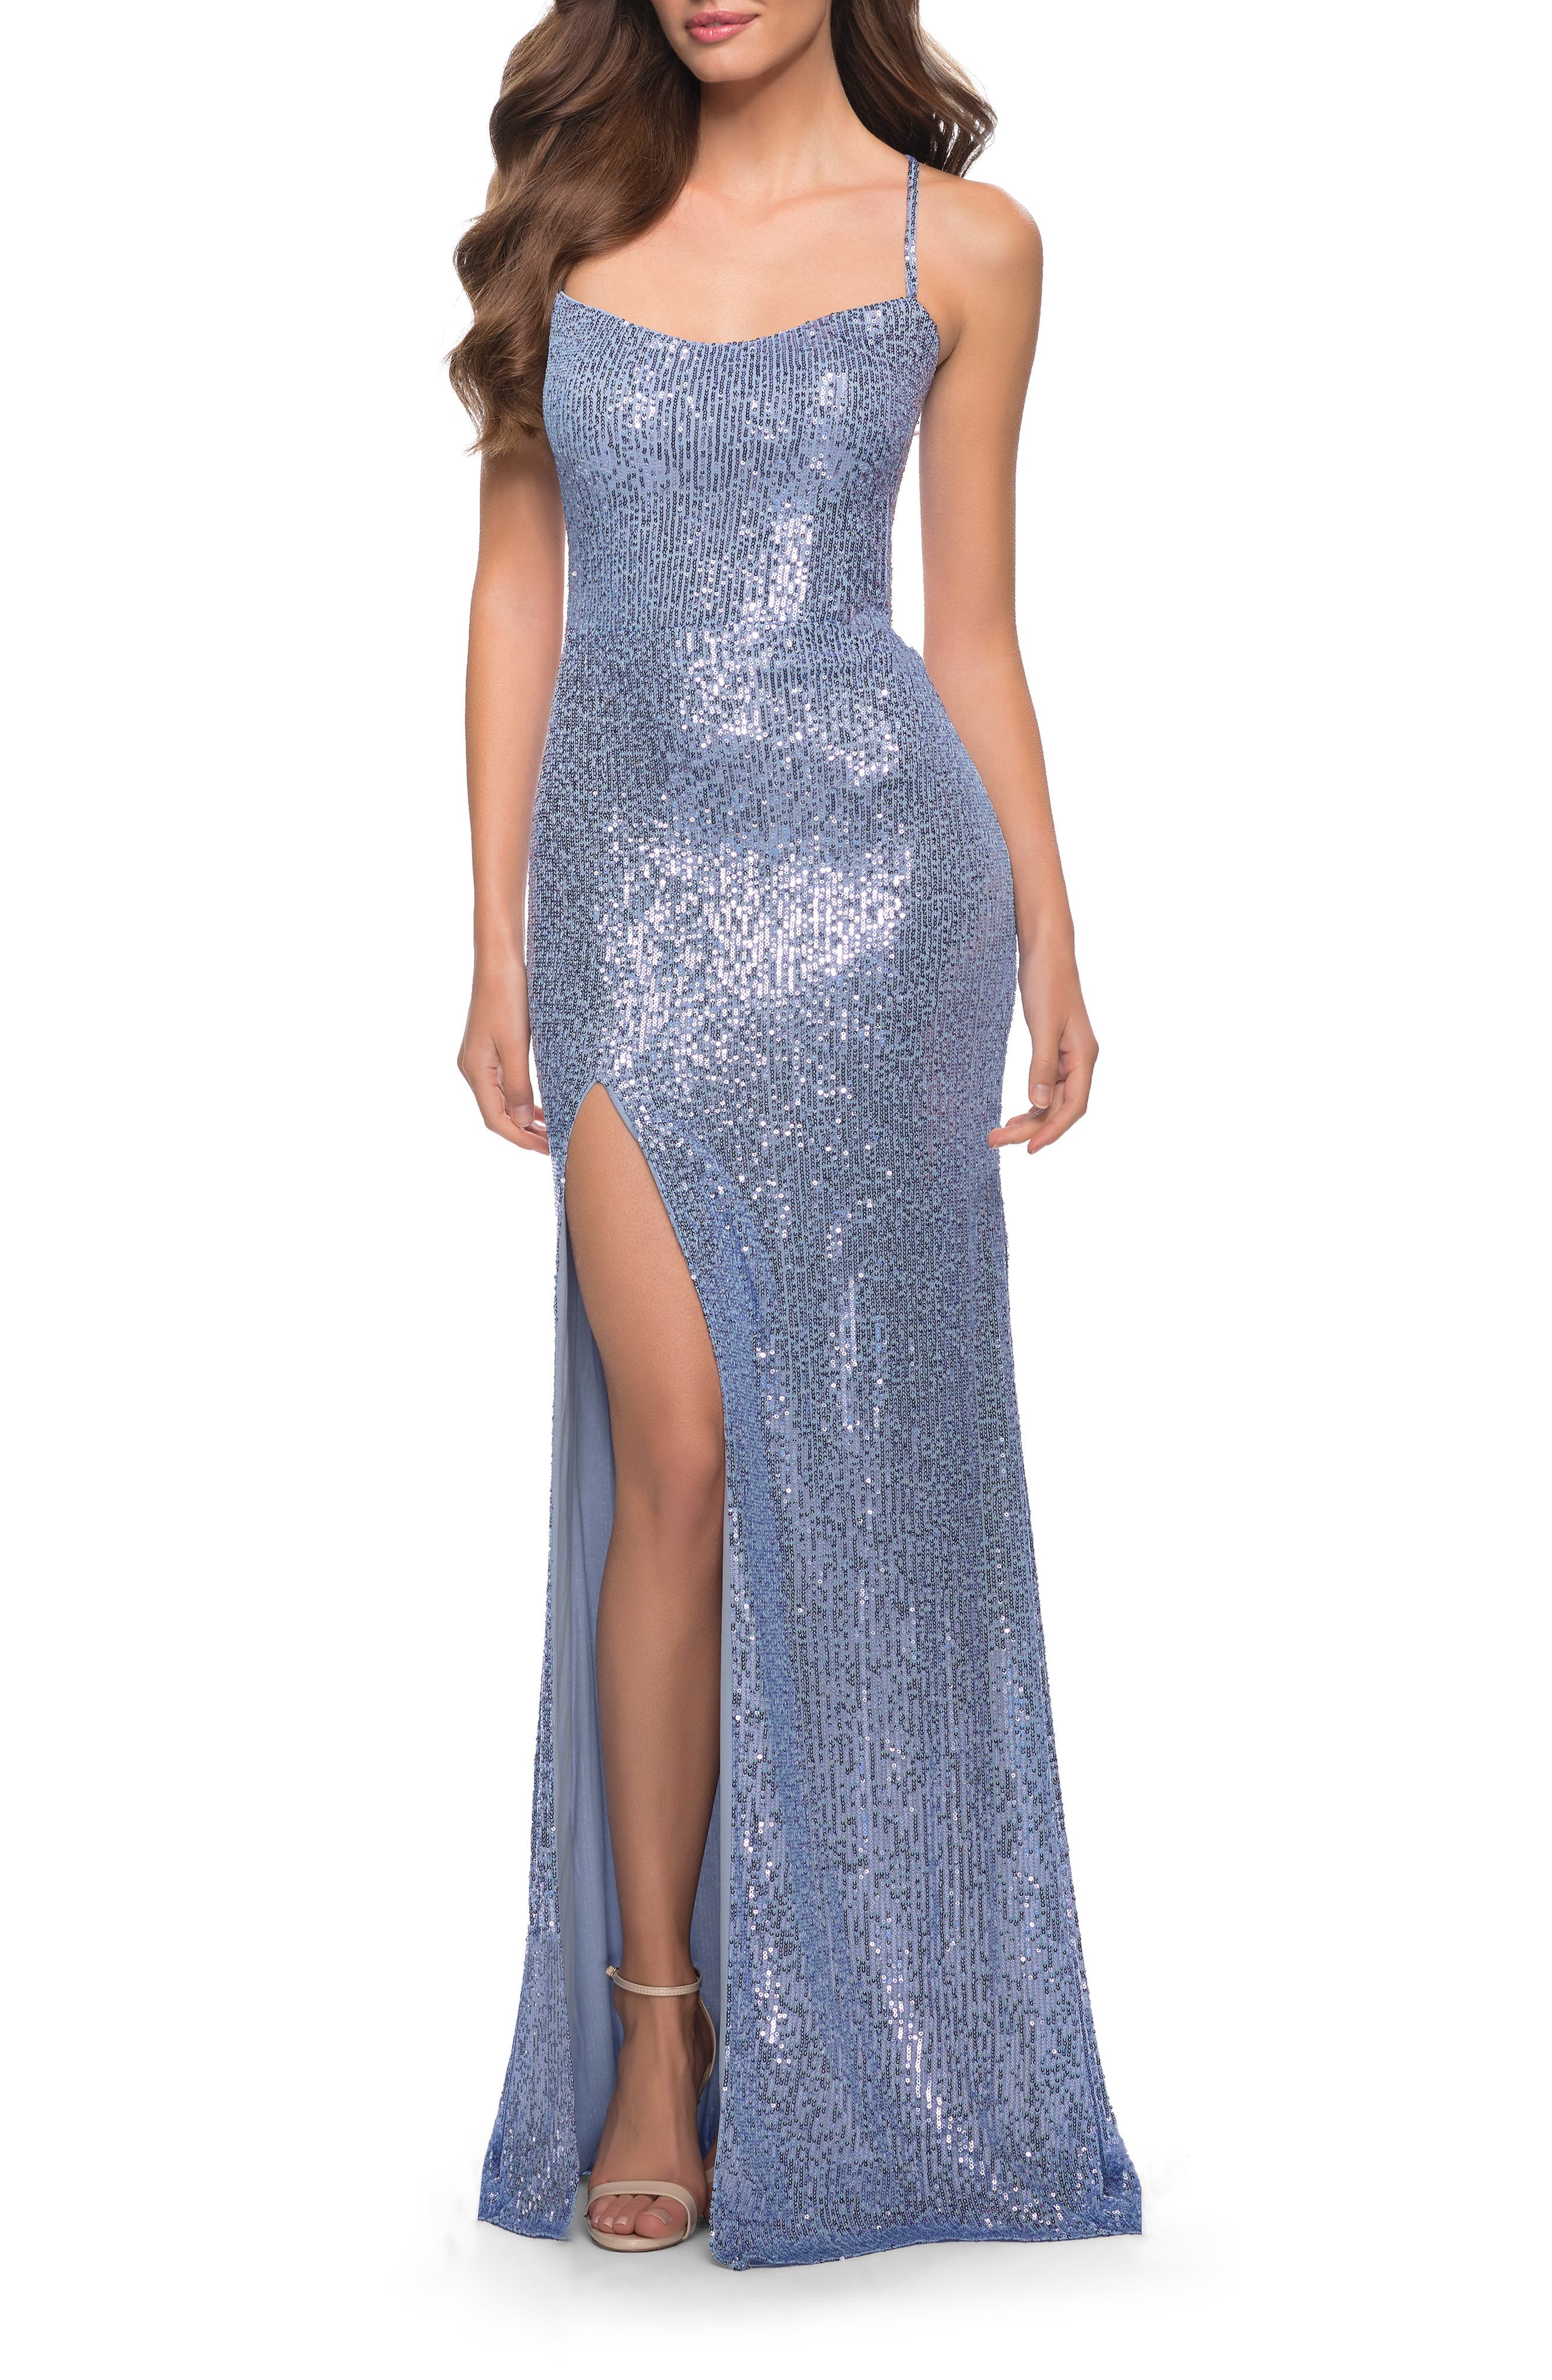 Vertical rows of tiny sequins add length while capturing every ray of light, making this skin-baring, open-back gown even more alluring. Style Name: La Femme Sequin Open Back Gown. Style Number: 6169505. Available in stores.